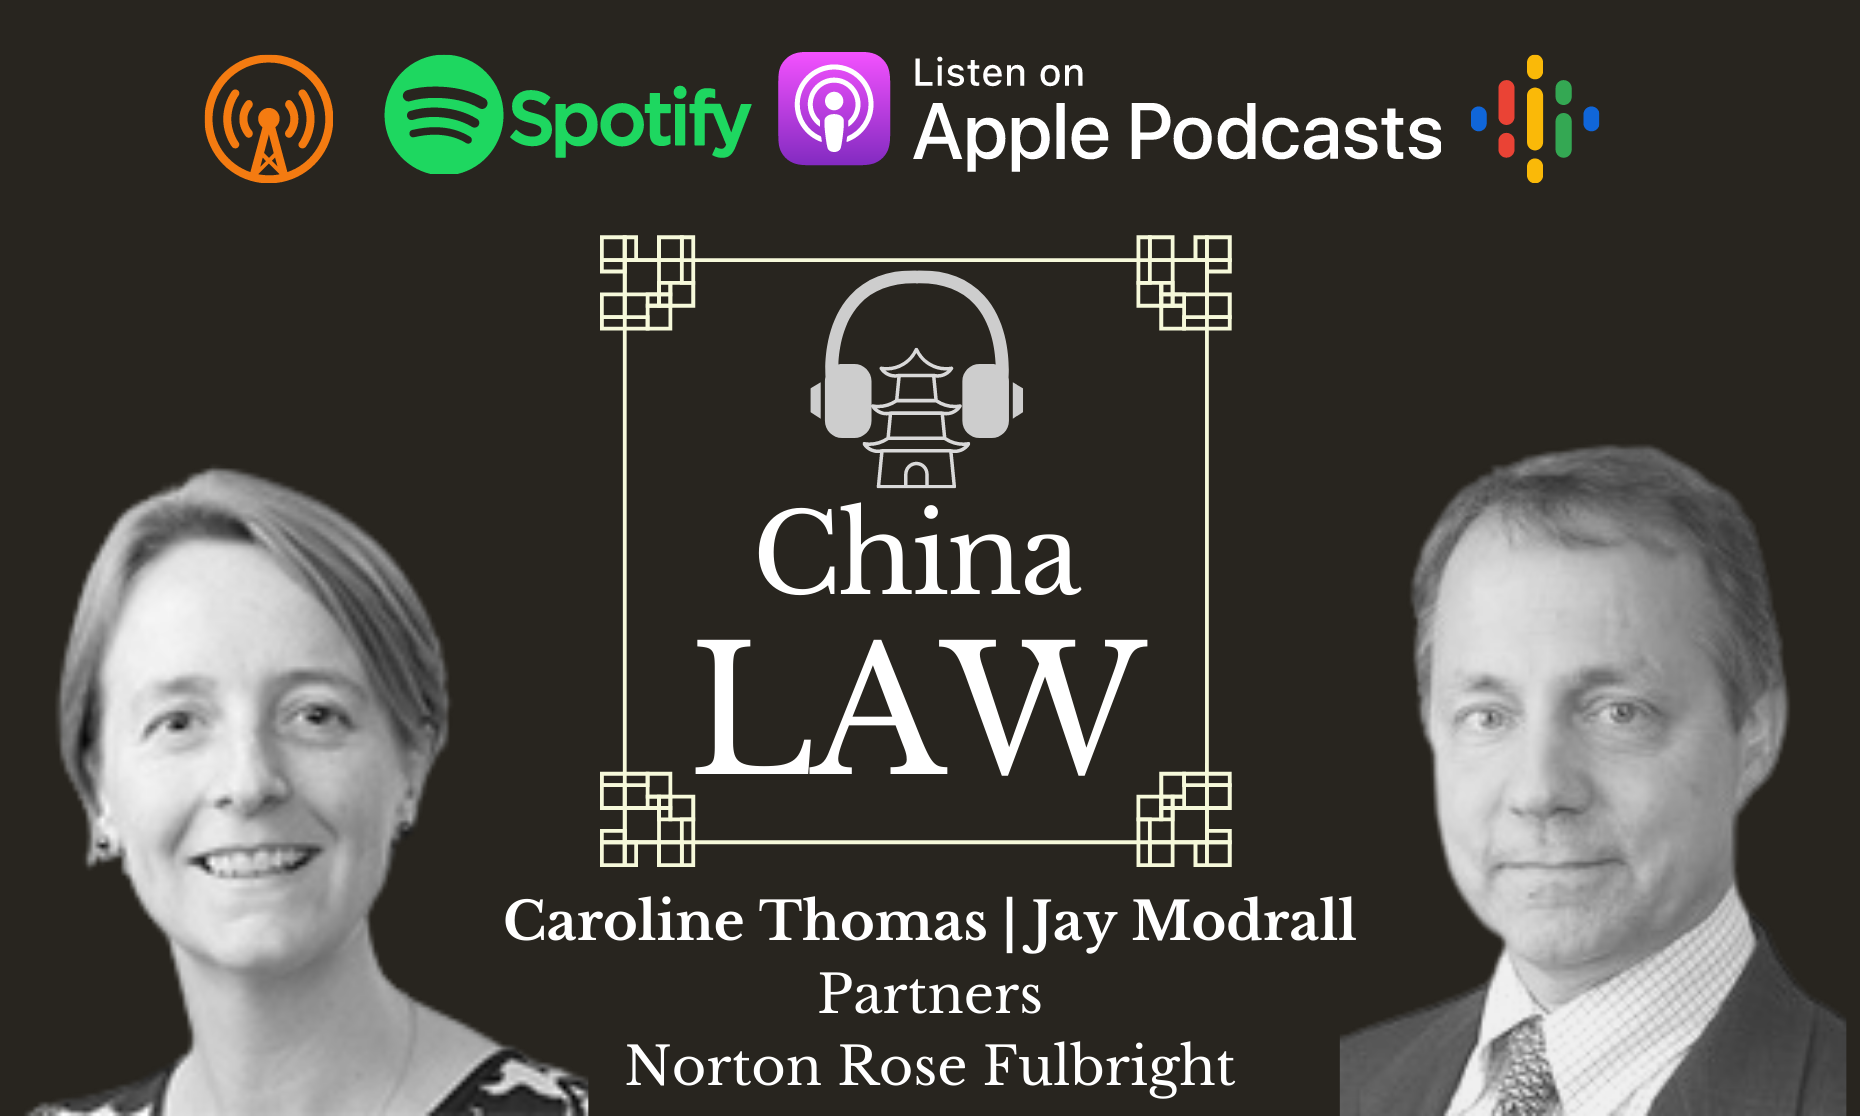 Podcast #16: Turning Tides - EU Foreign Investment Screening, COVID-19, and Growing Scrutiny on China